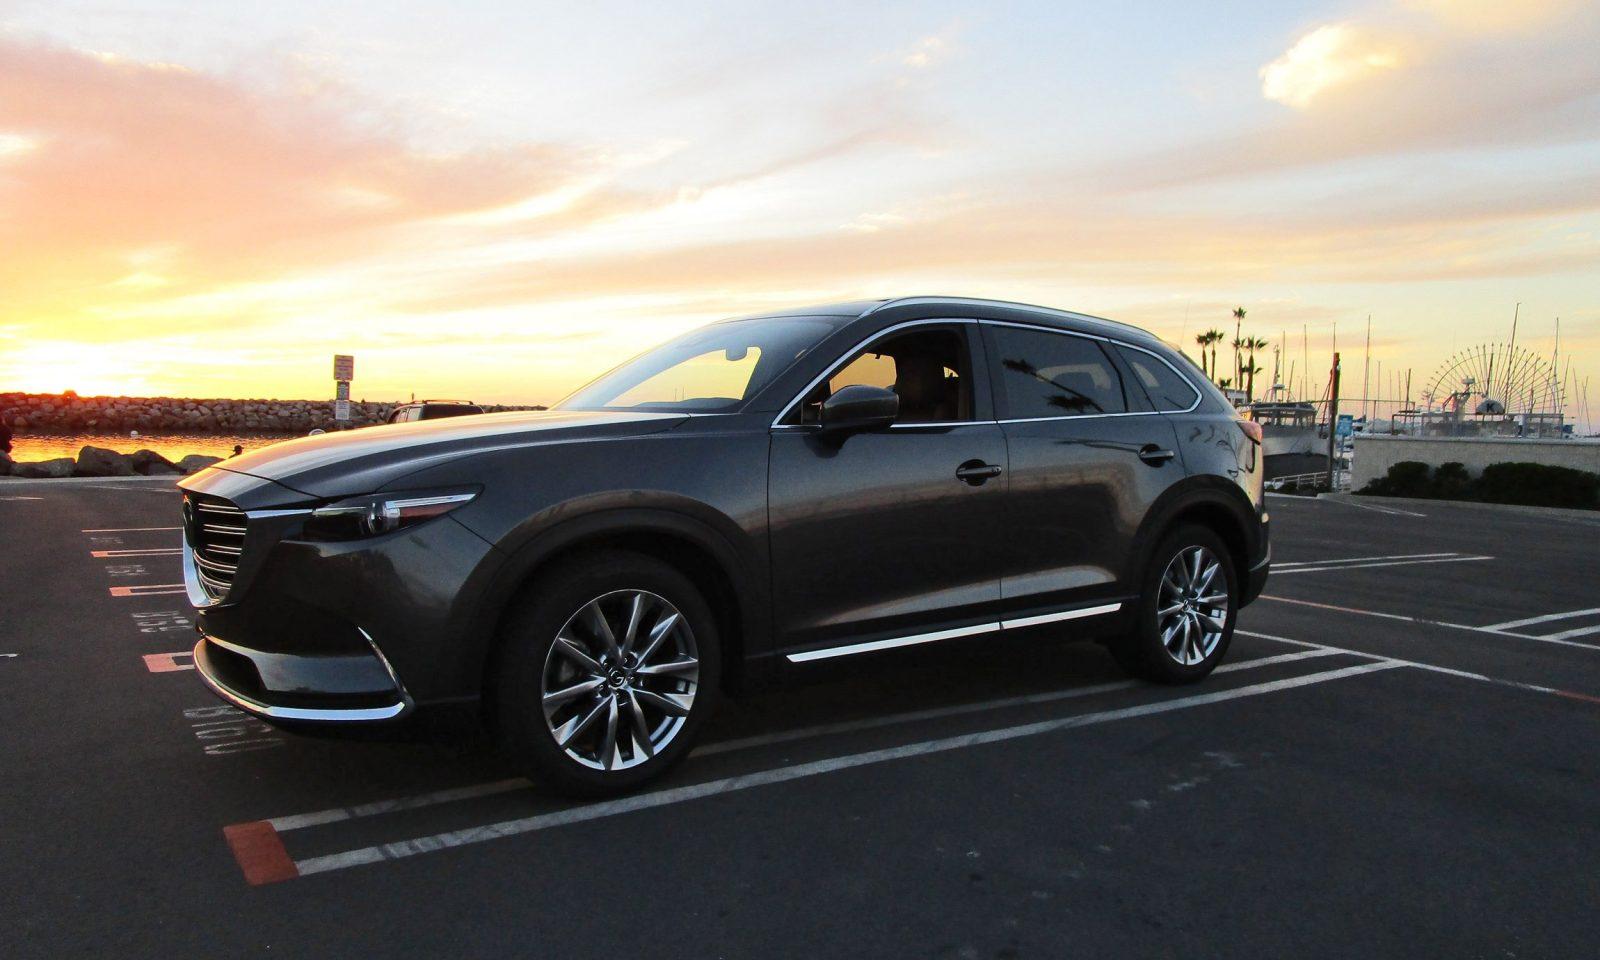 2016 mazda cx 9 signature road test review by ben. Black Bedroom Furniture Sets. Home Design Ideas